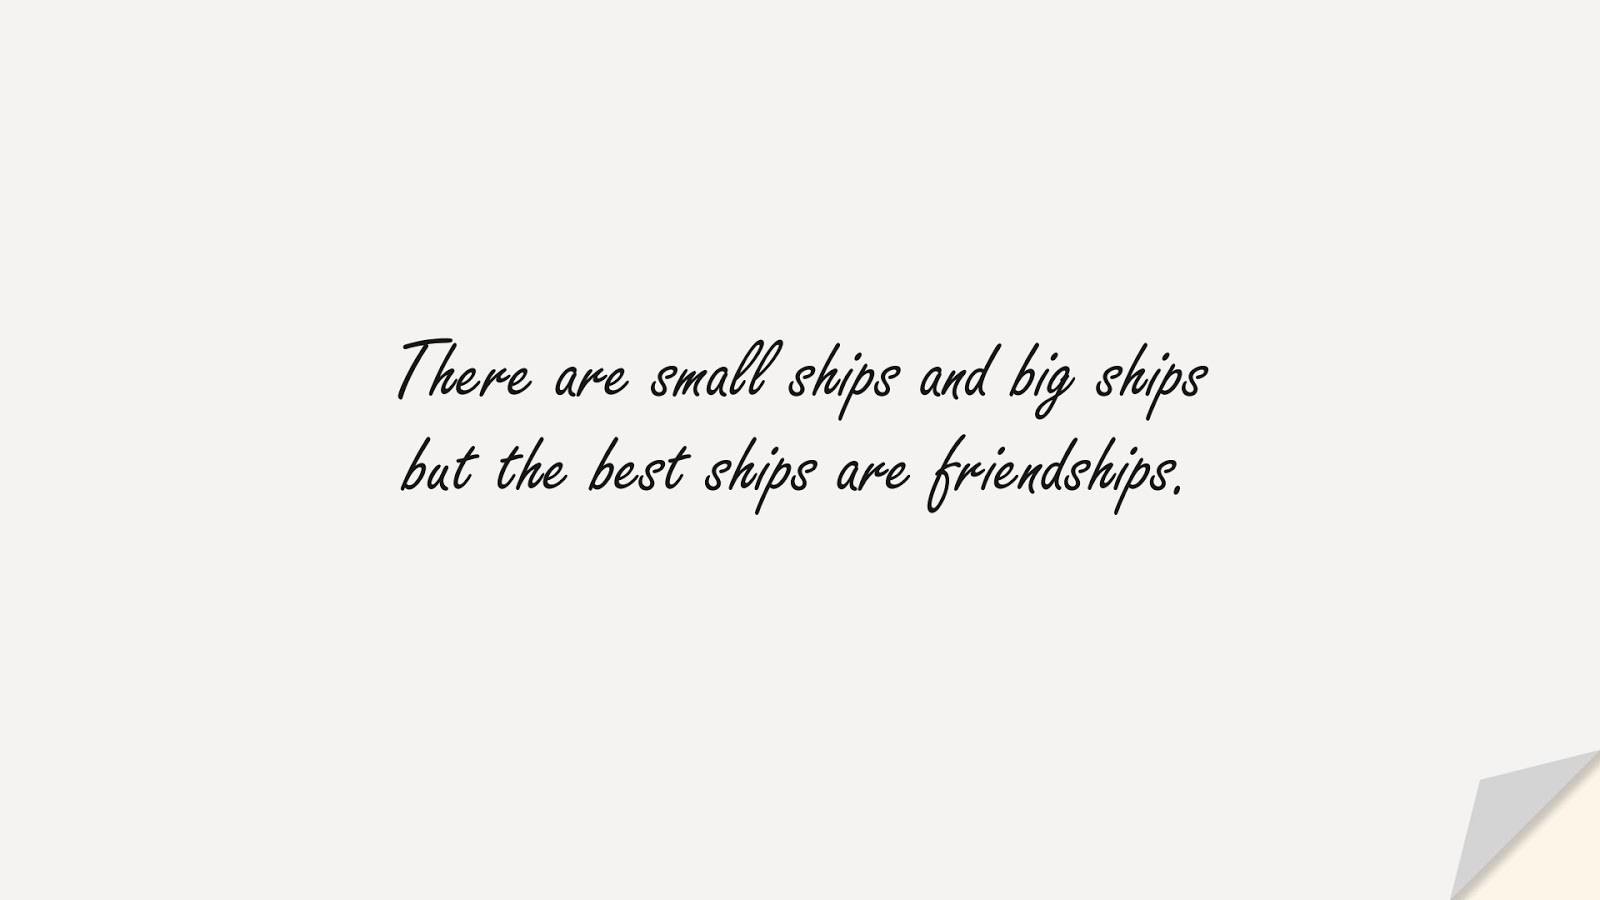 There are small ships and big ships but the best ships are friendships.FALSE